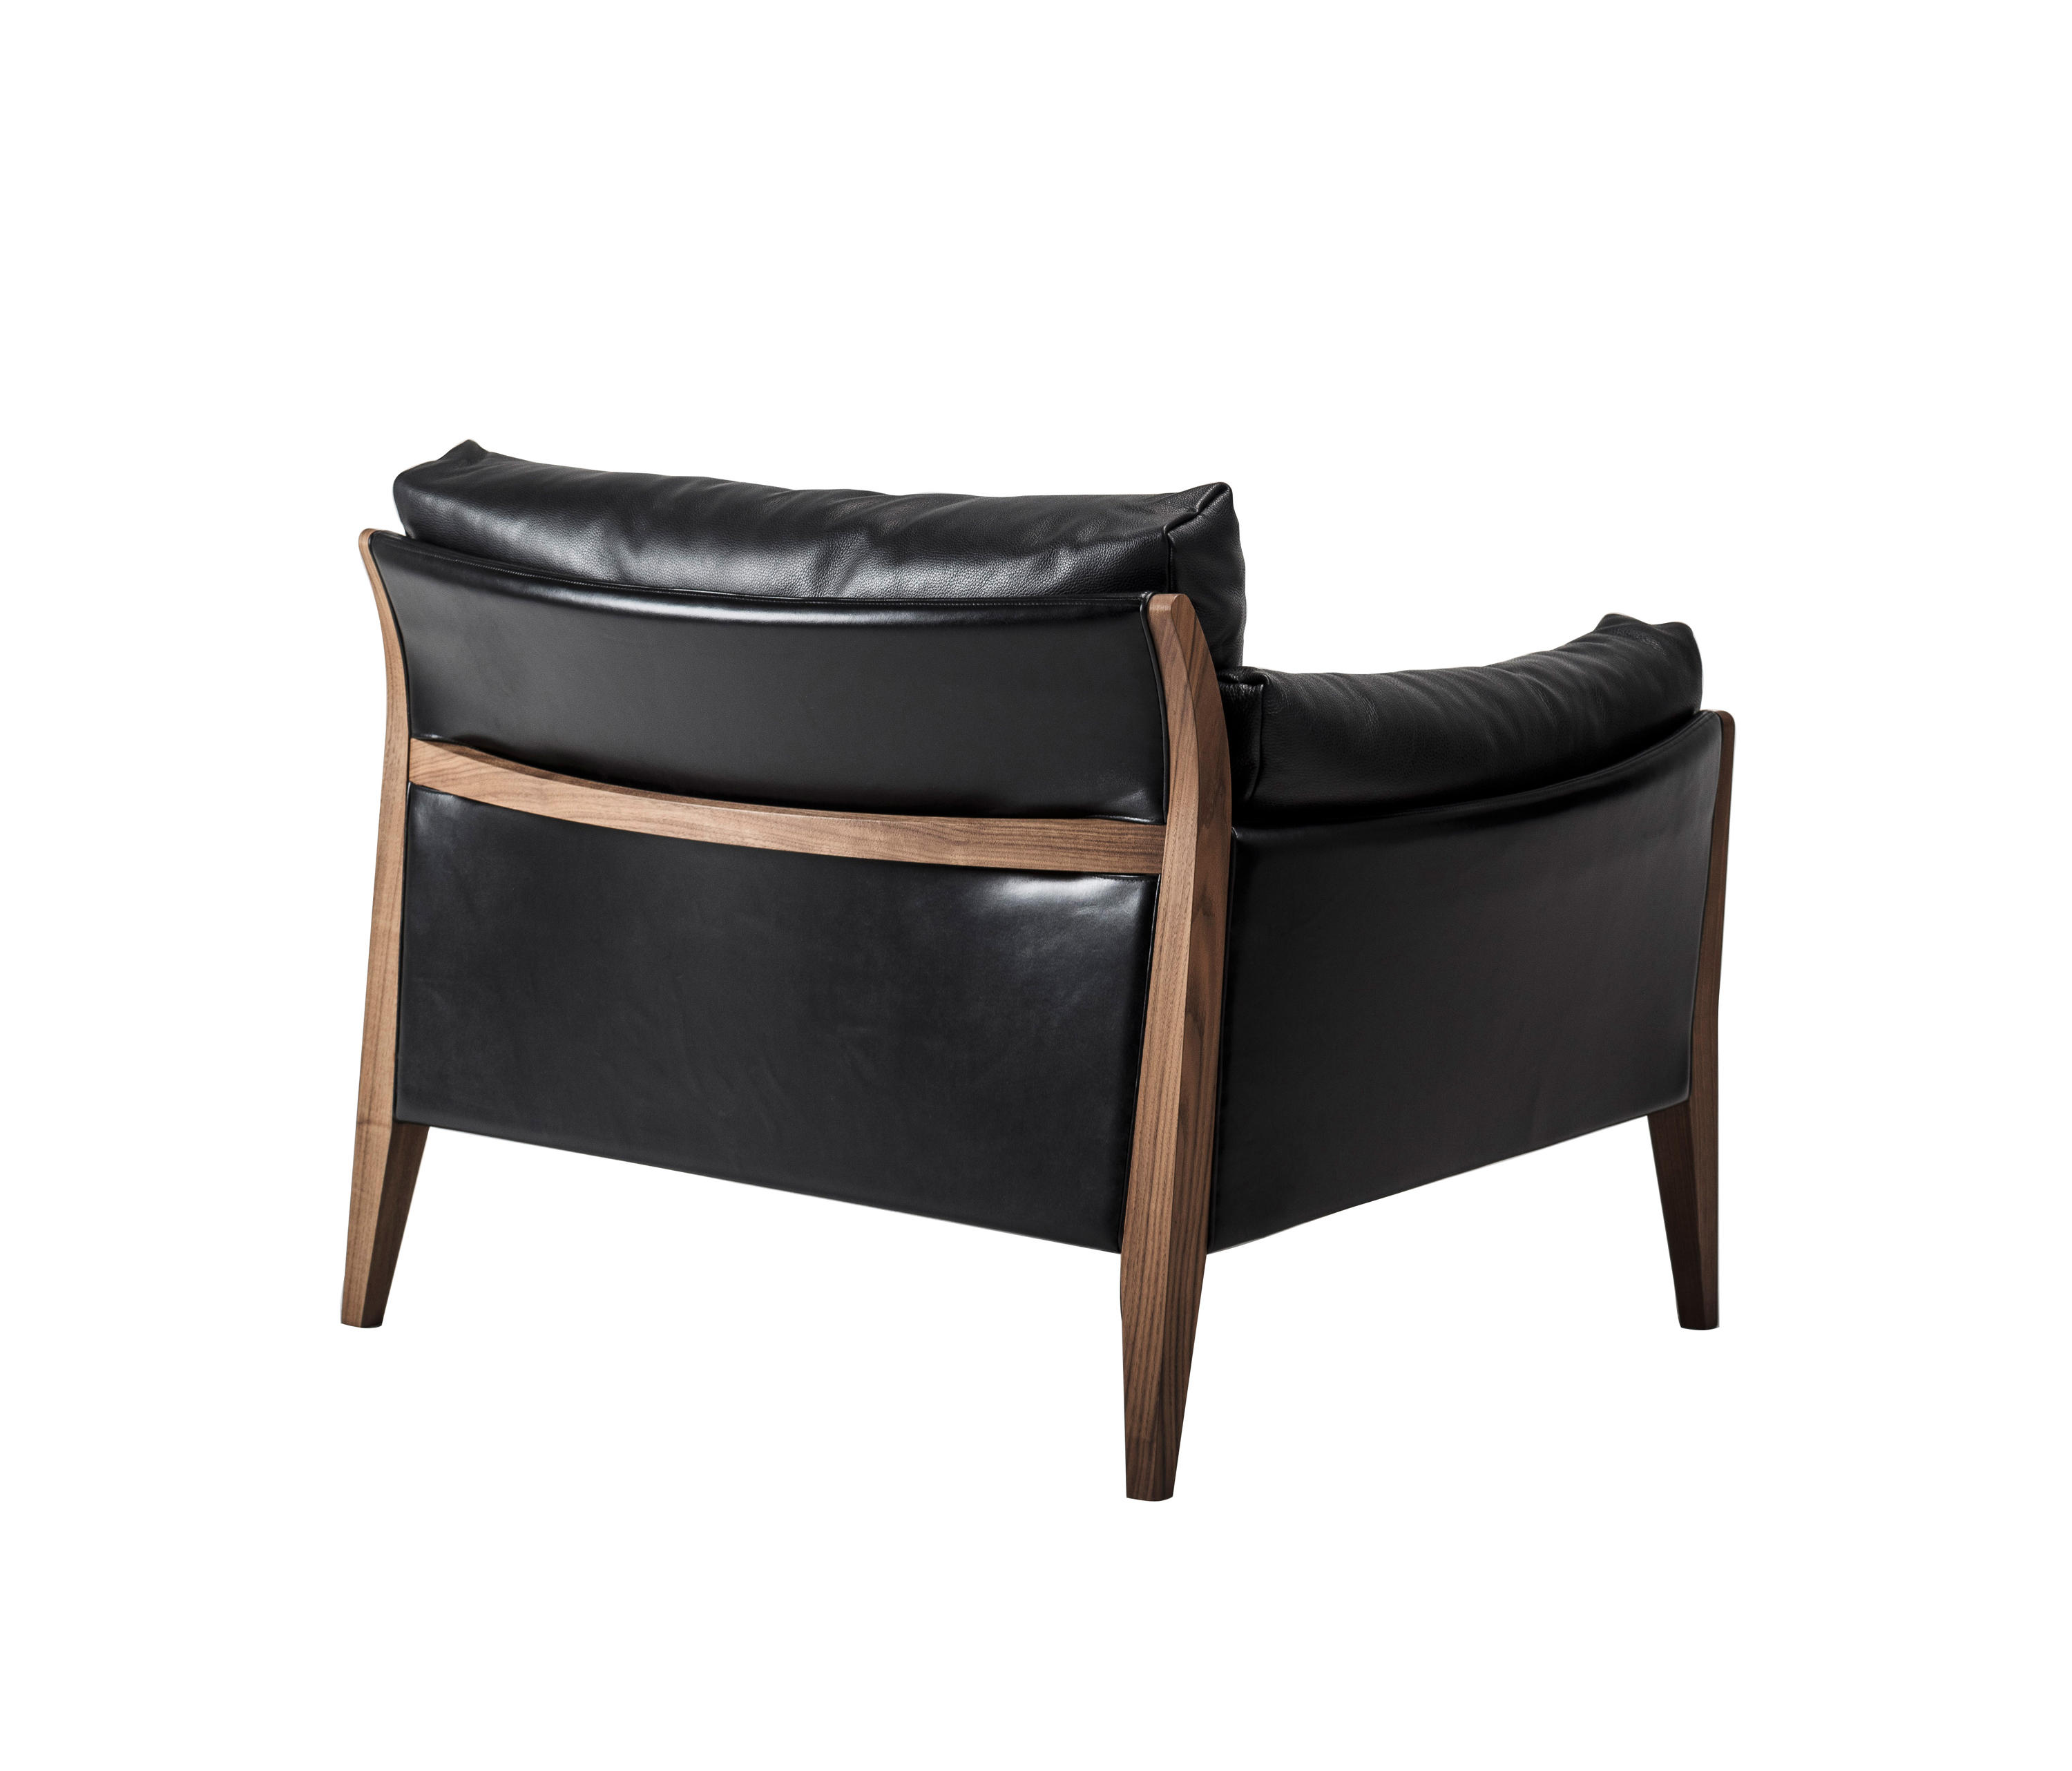 Bettsofa design  DIANA | SOFA - Lounge chairs from Ritzwell | Architonic